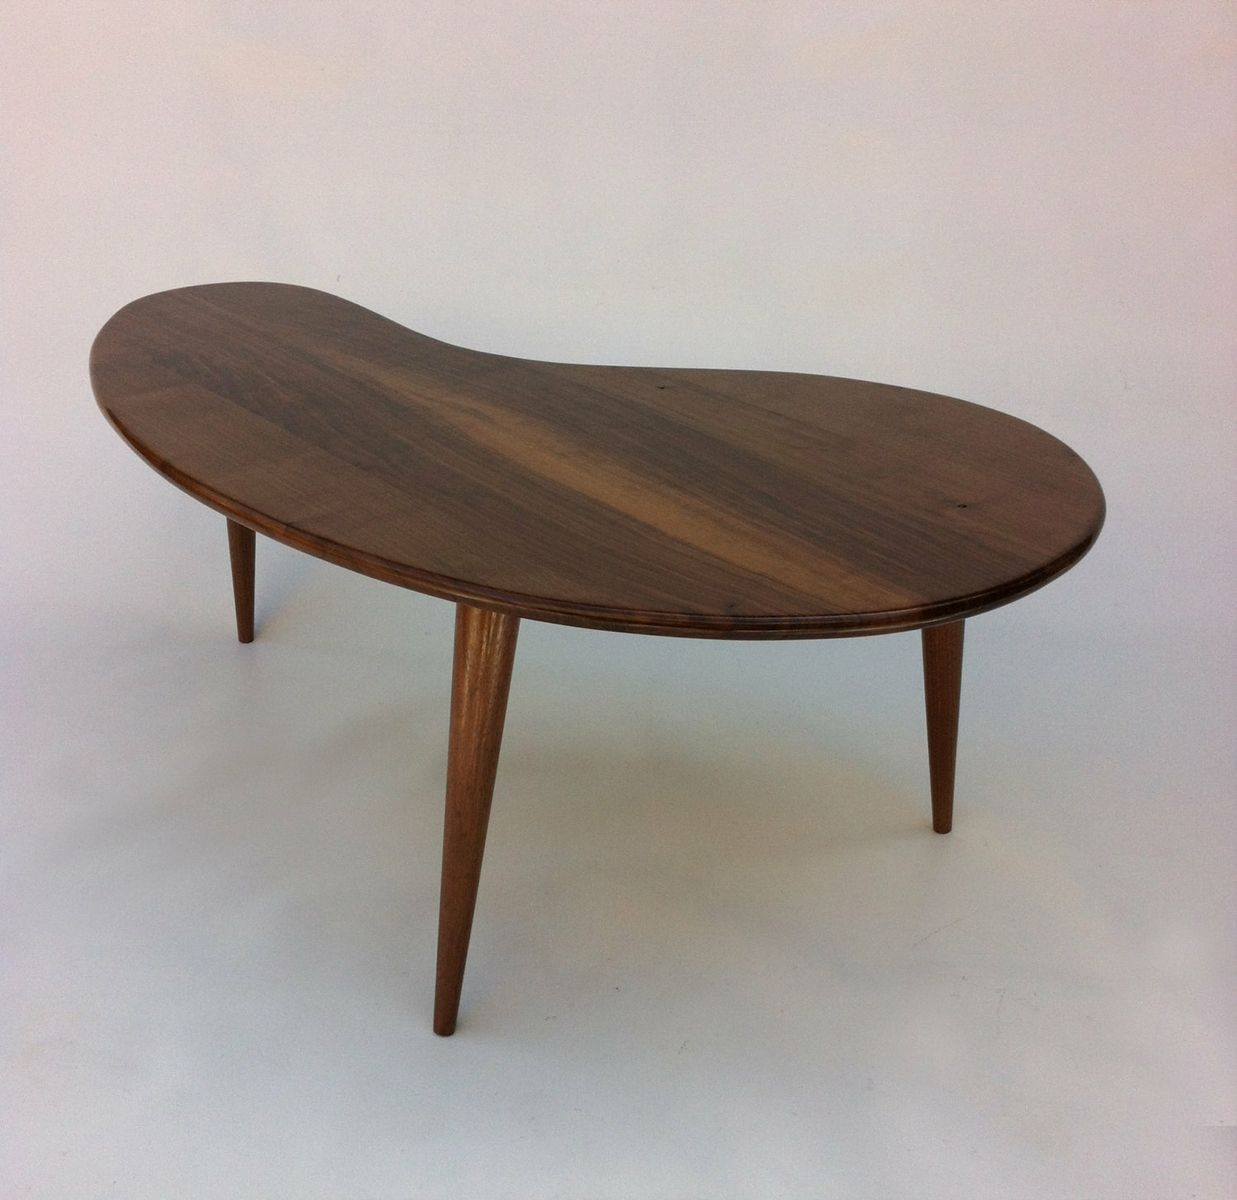 Buy Custom Modern Coffee Cocktail Table Eames Era Amoeba Design With Tapered Walnut Legs Made